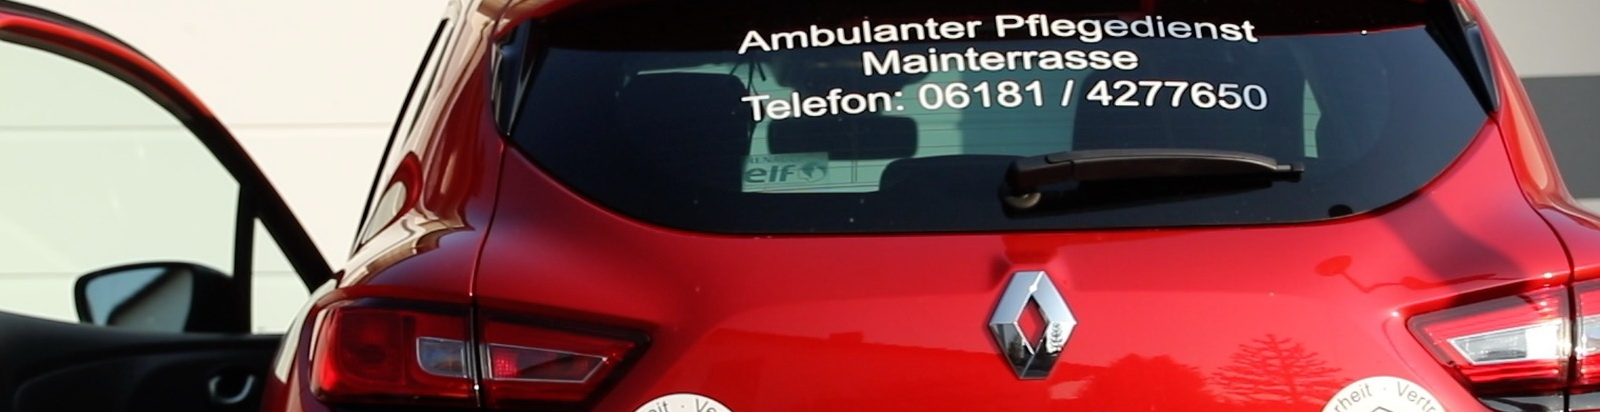 "Ambulanter Pflegedienst ""Mainterrasse"" GmbH"